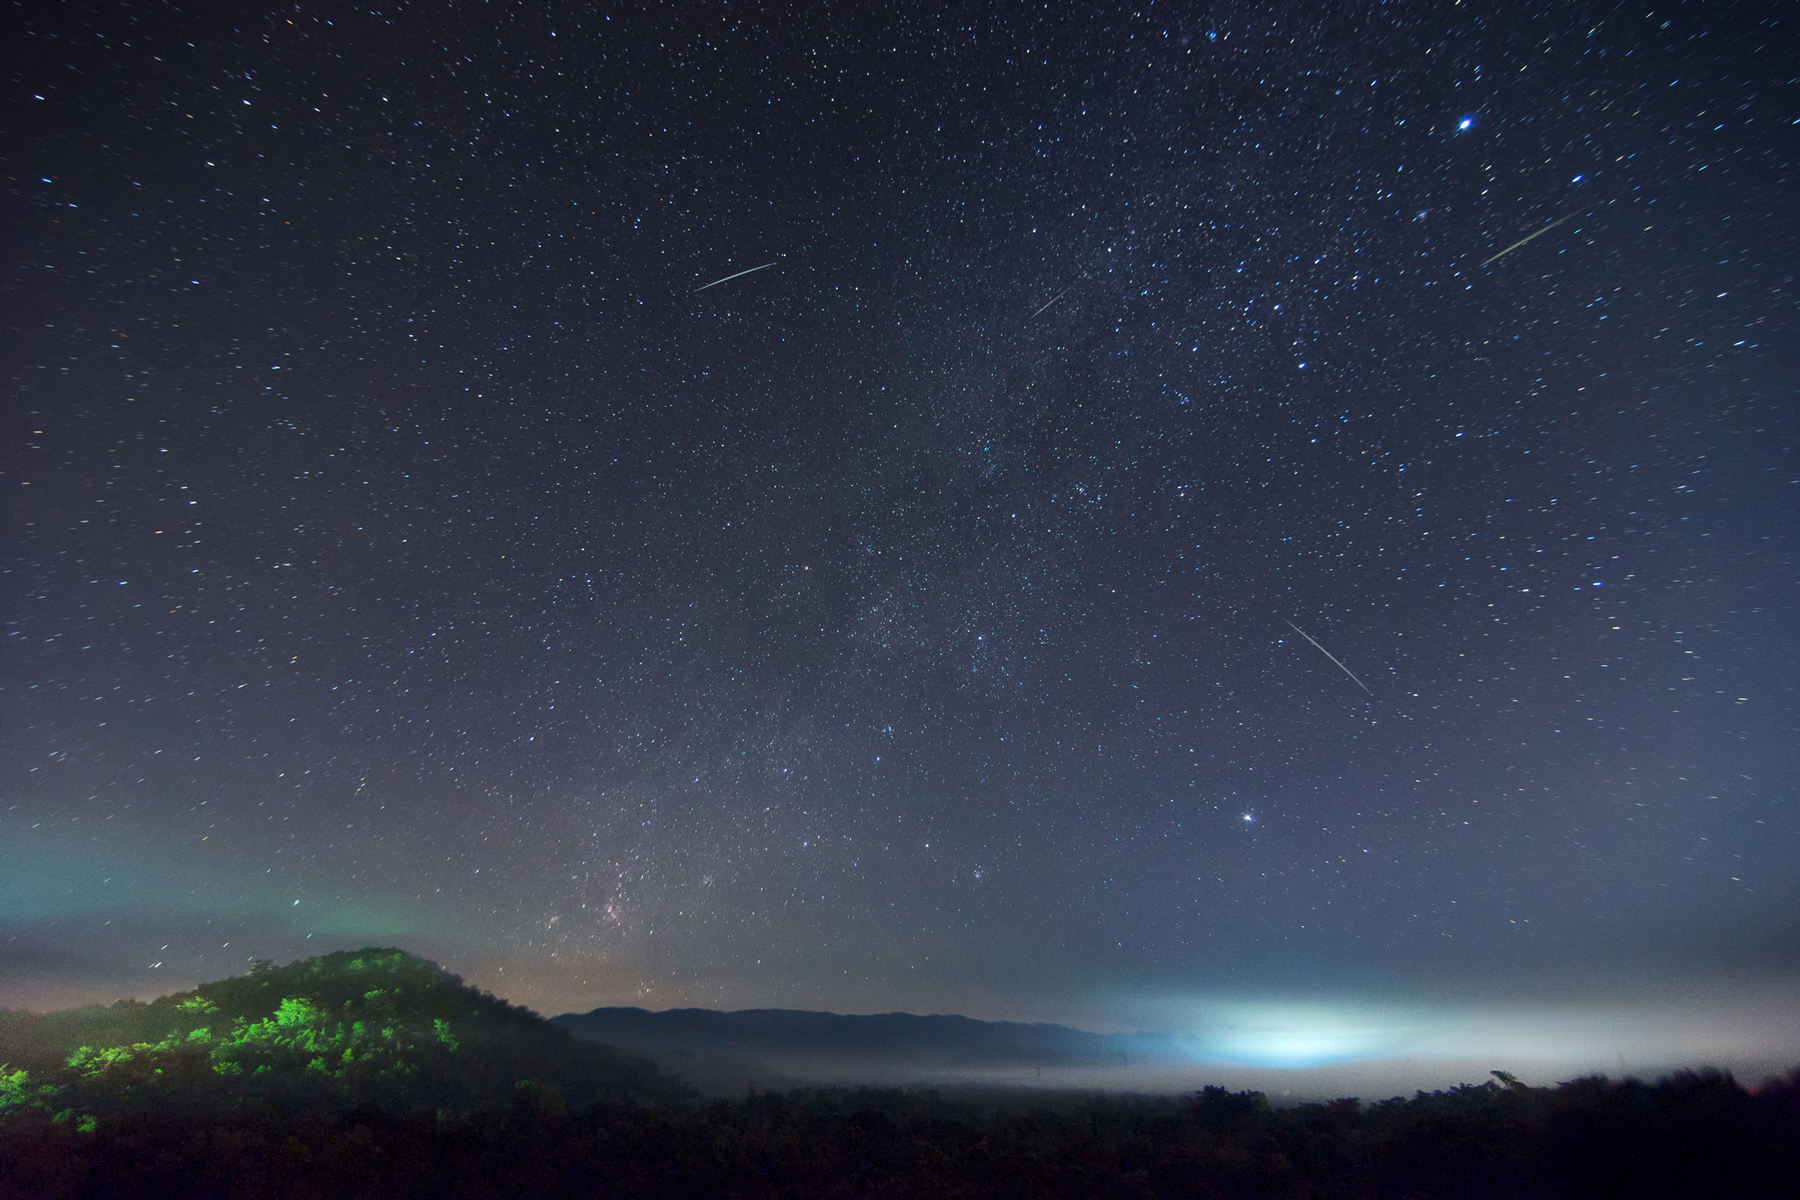 Milky way on hill with Leonid meteor shower